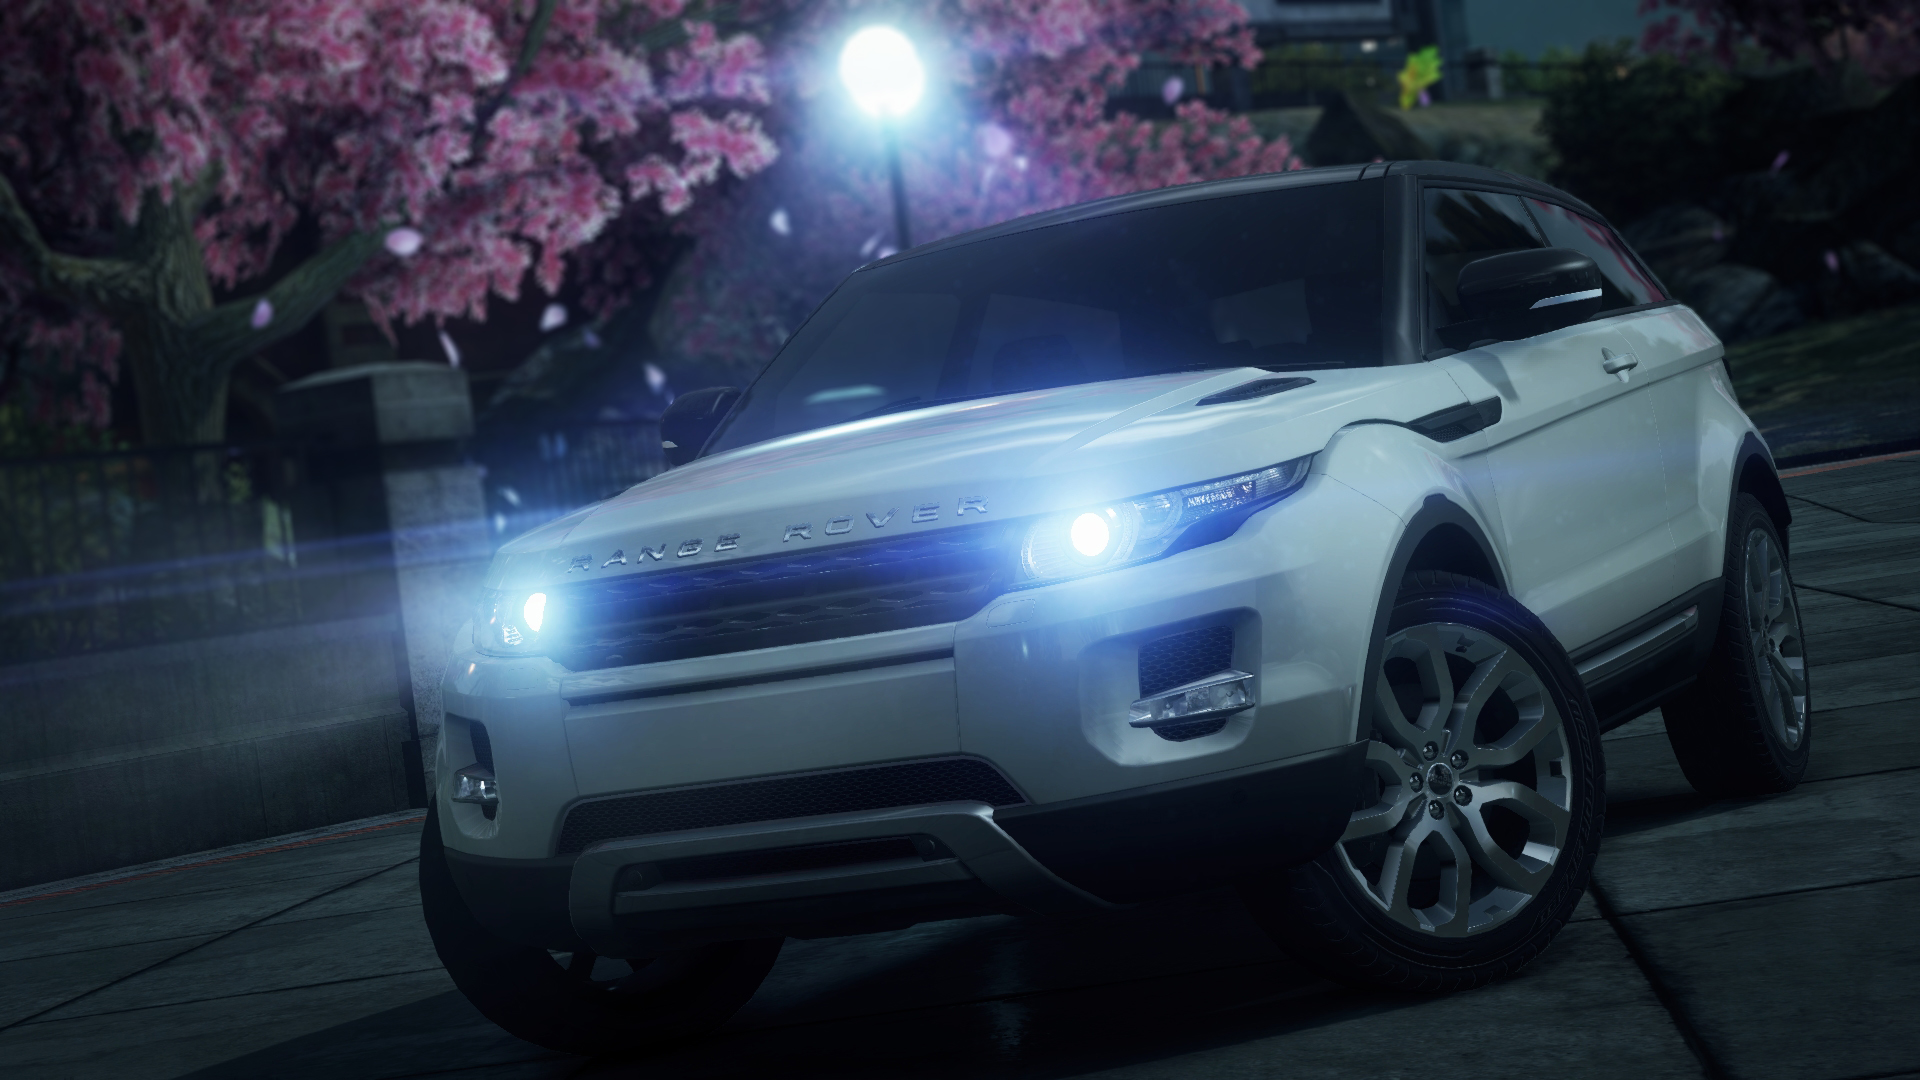 Range Rover Evoque | Need for Speed Wiki | FANDOM powered by Wikia